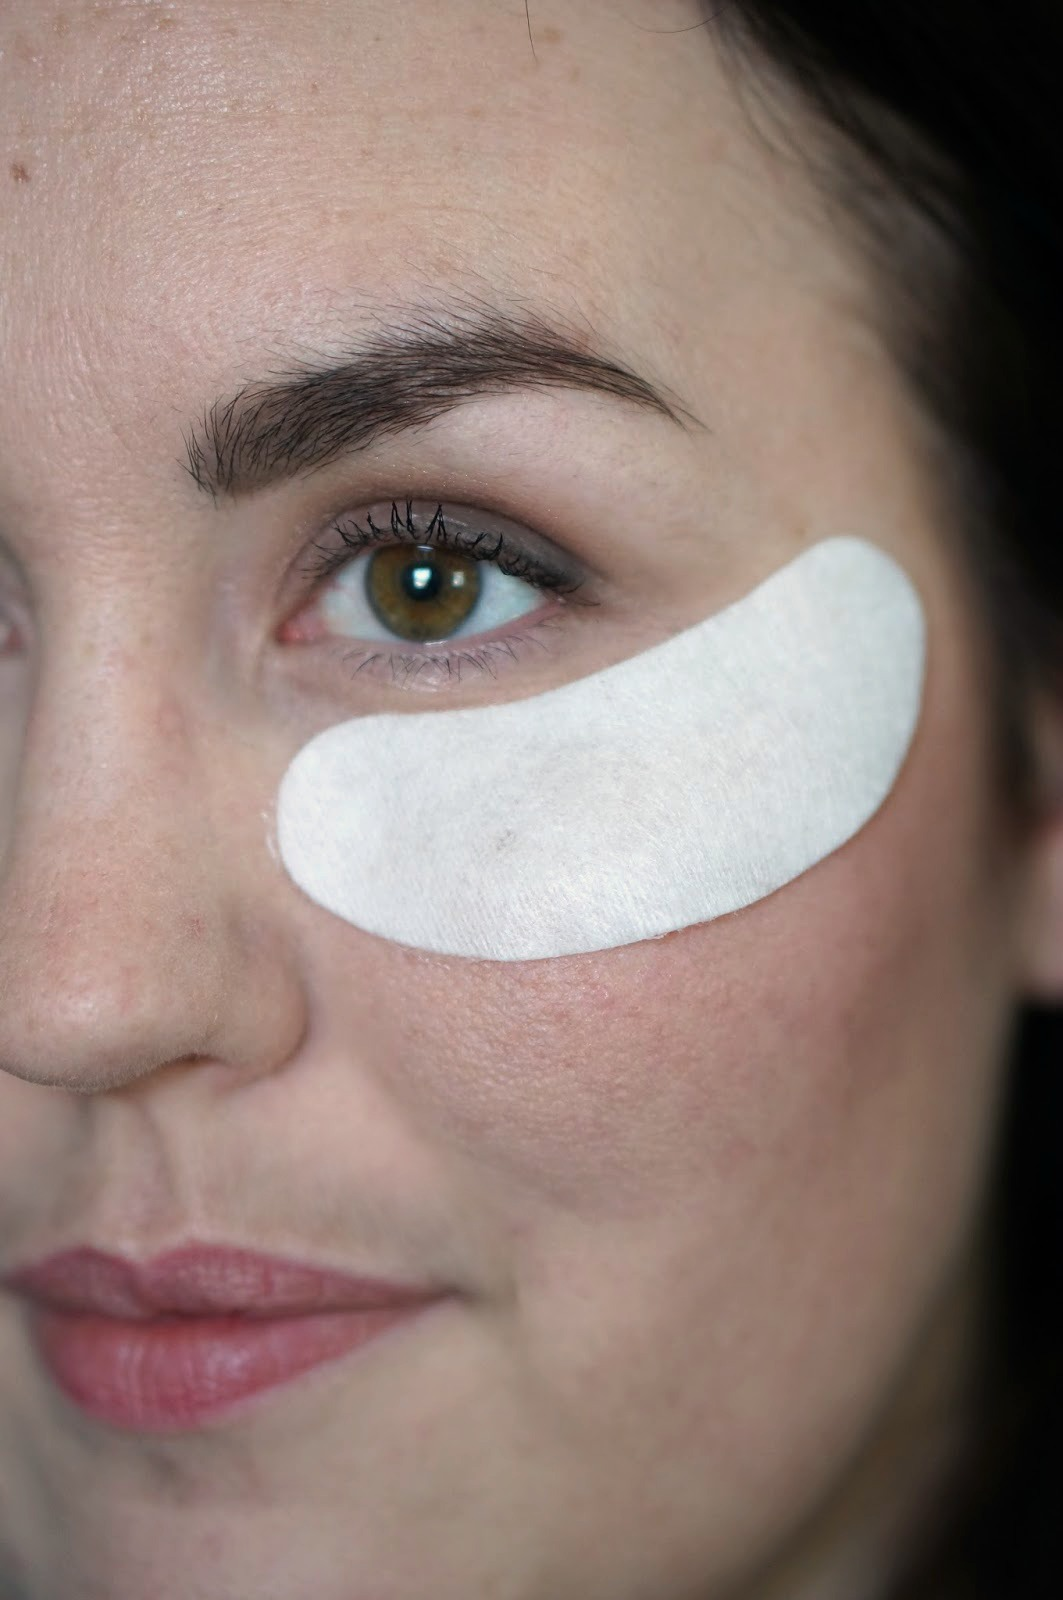 Rebecca Lately VIICode Oxygen Eye Mask Review